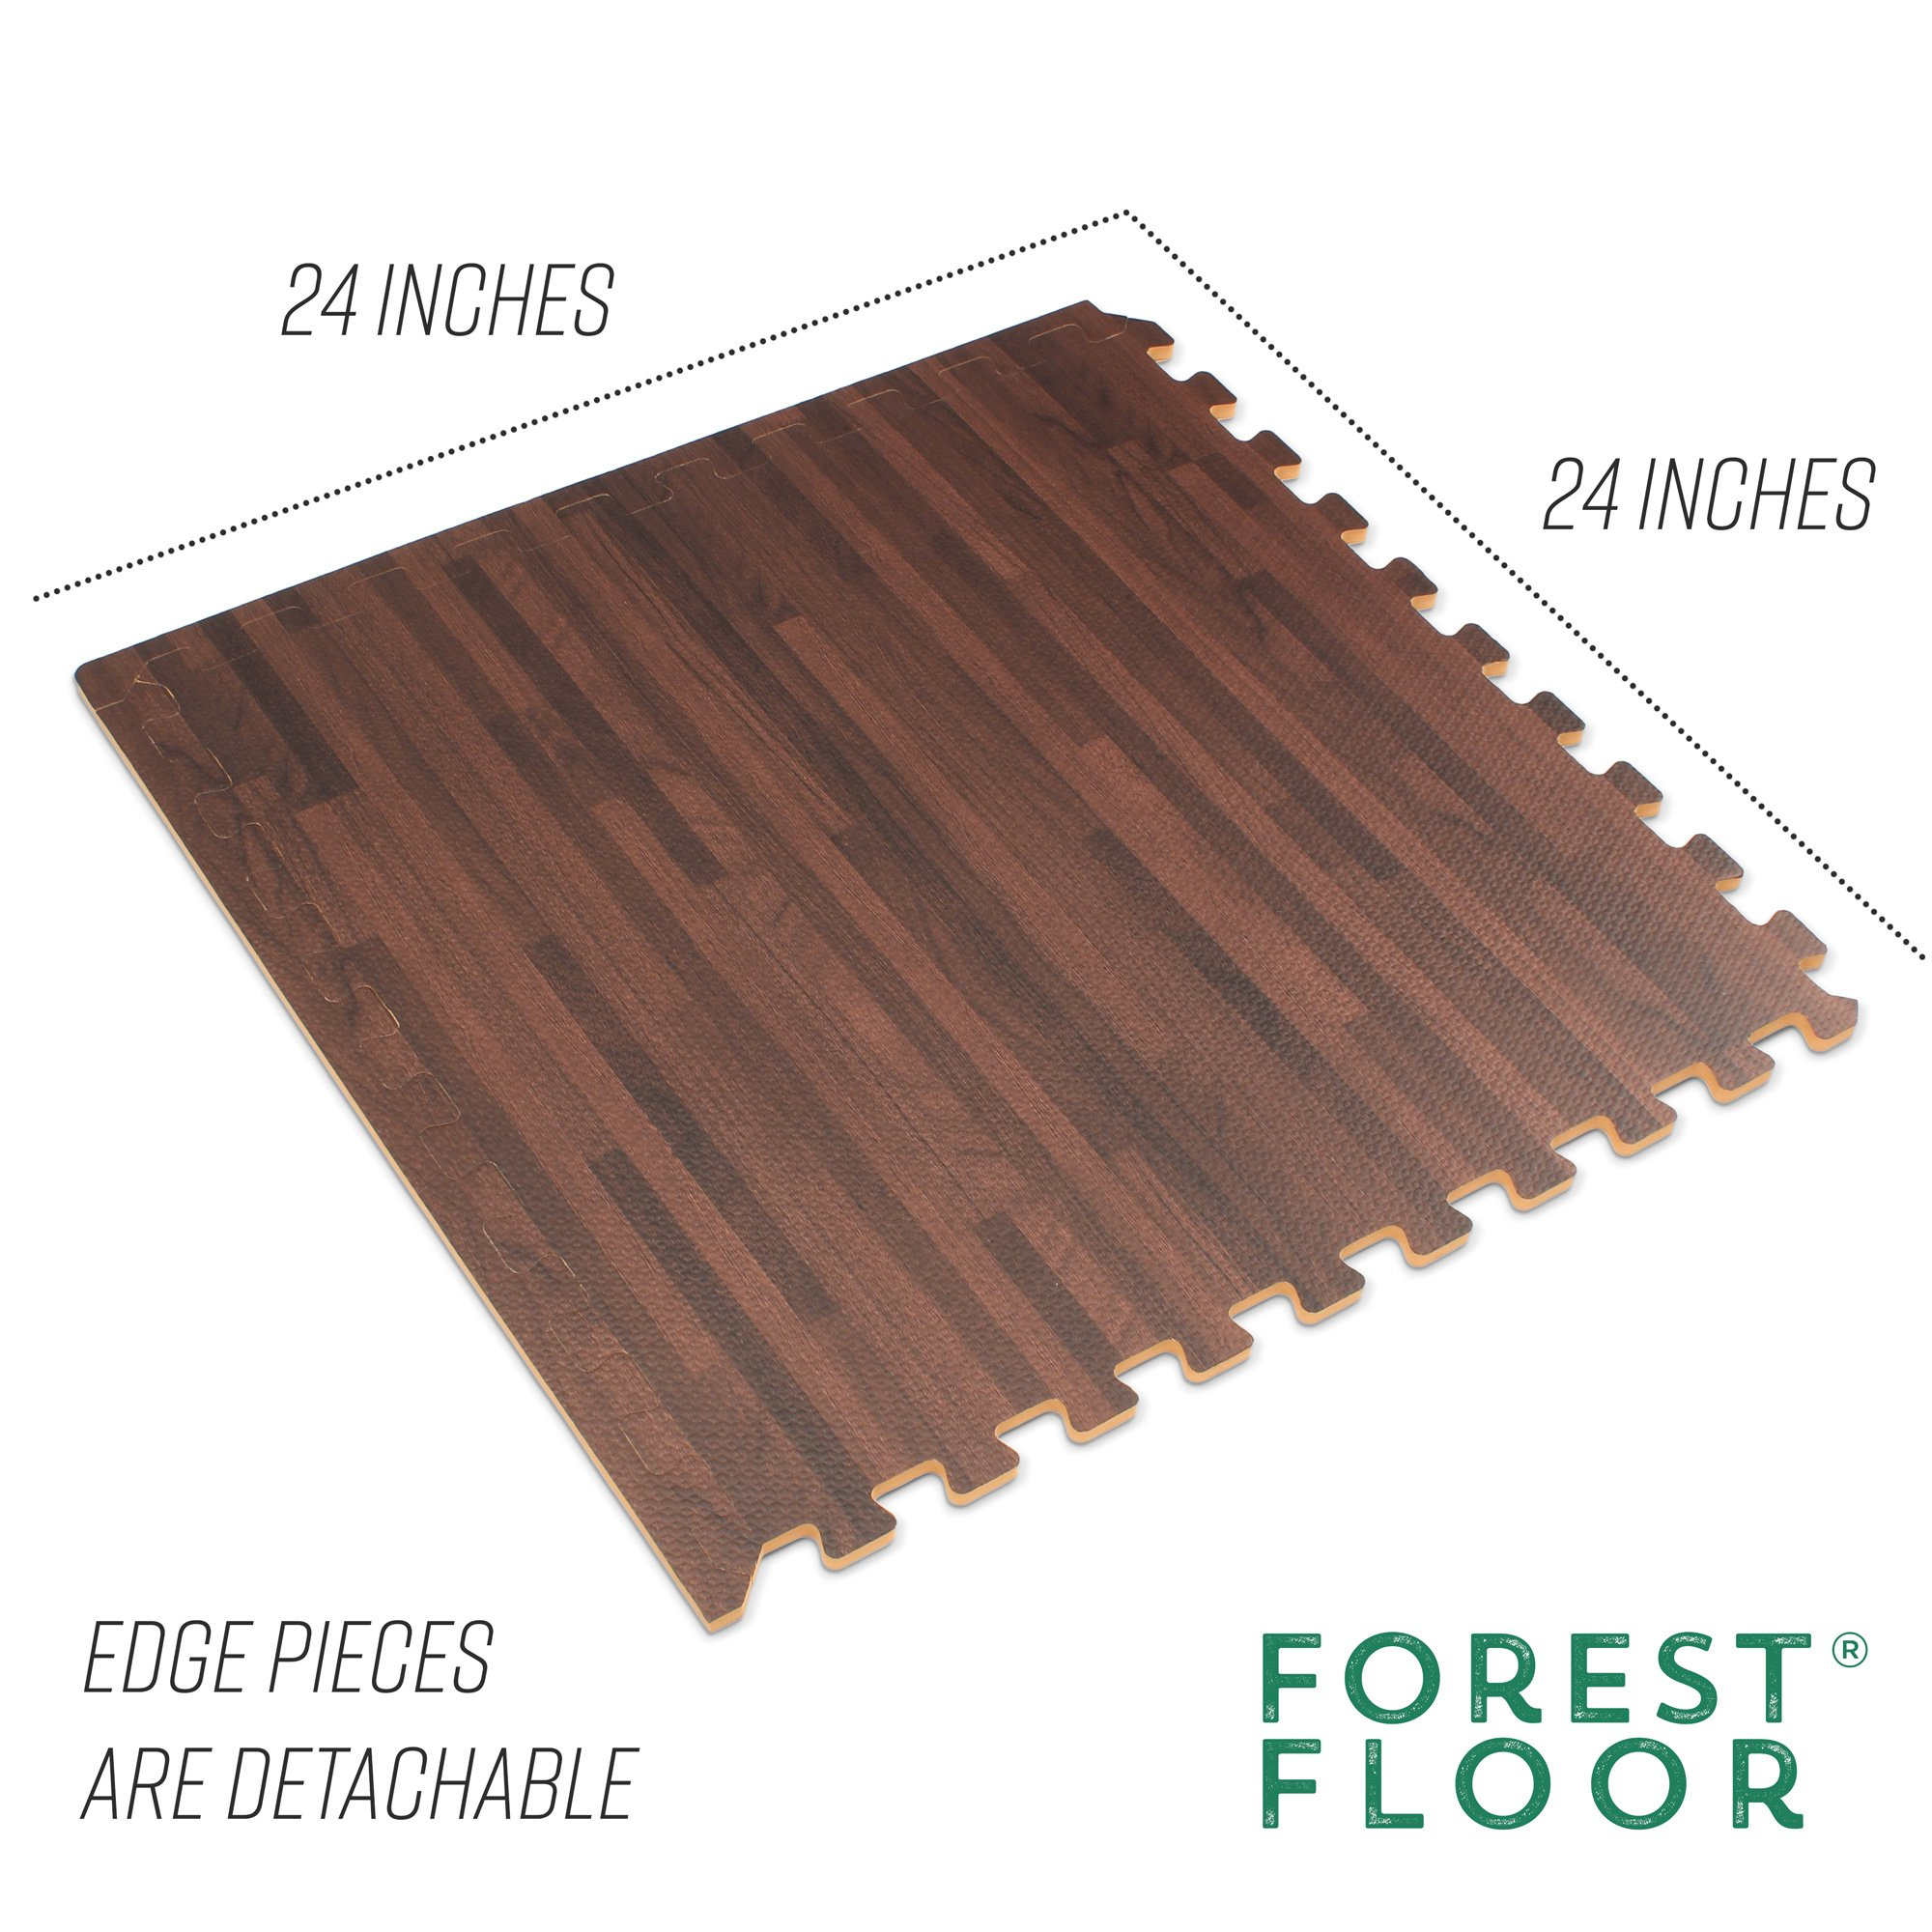 Forest Floor 3/8'' Thick Printed Wood Grain Interlocking Foam Floor Mats, 16 Sq Ft (4 Tiles), Cherry by Forest Floor (Image #4)